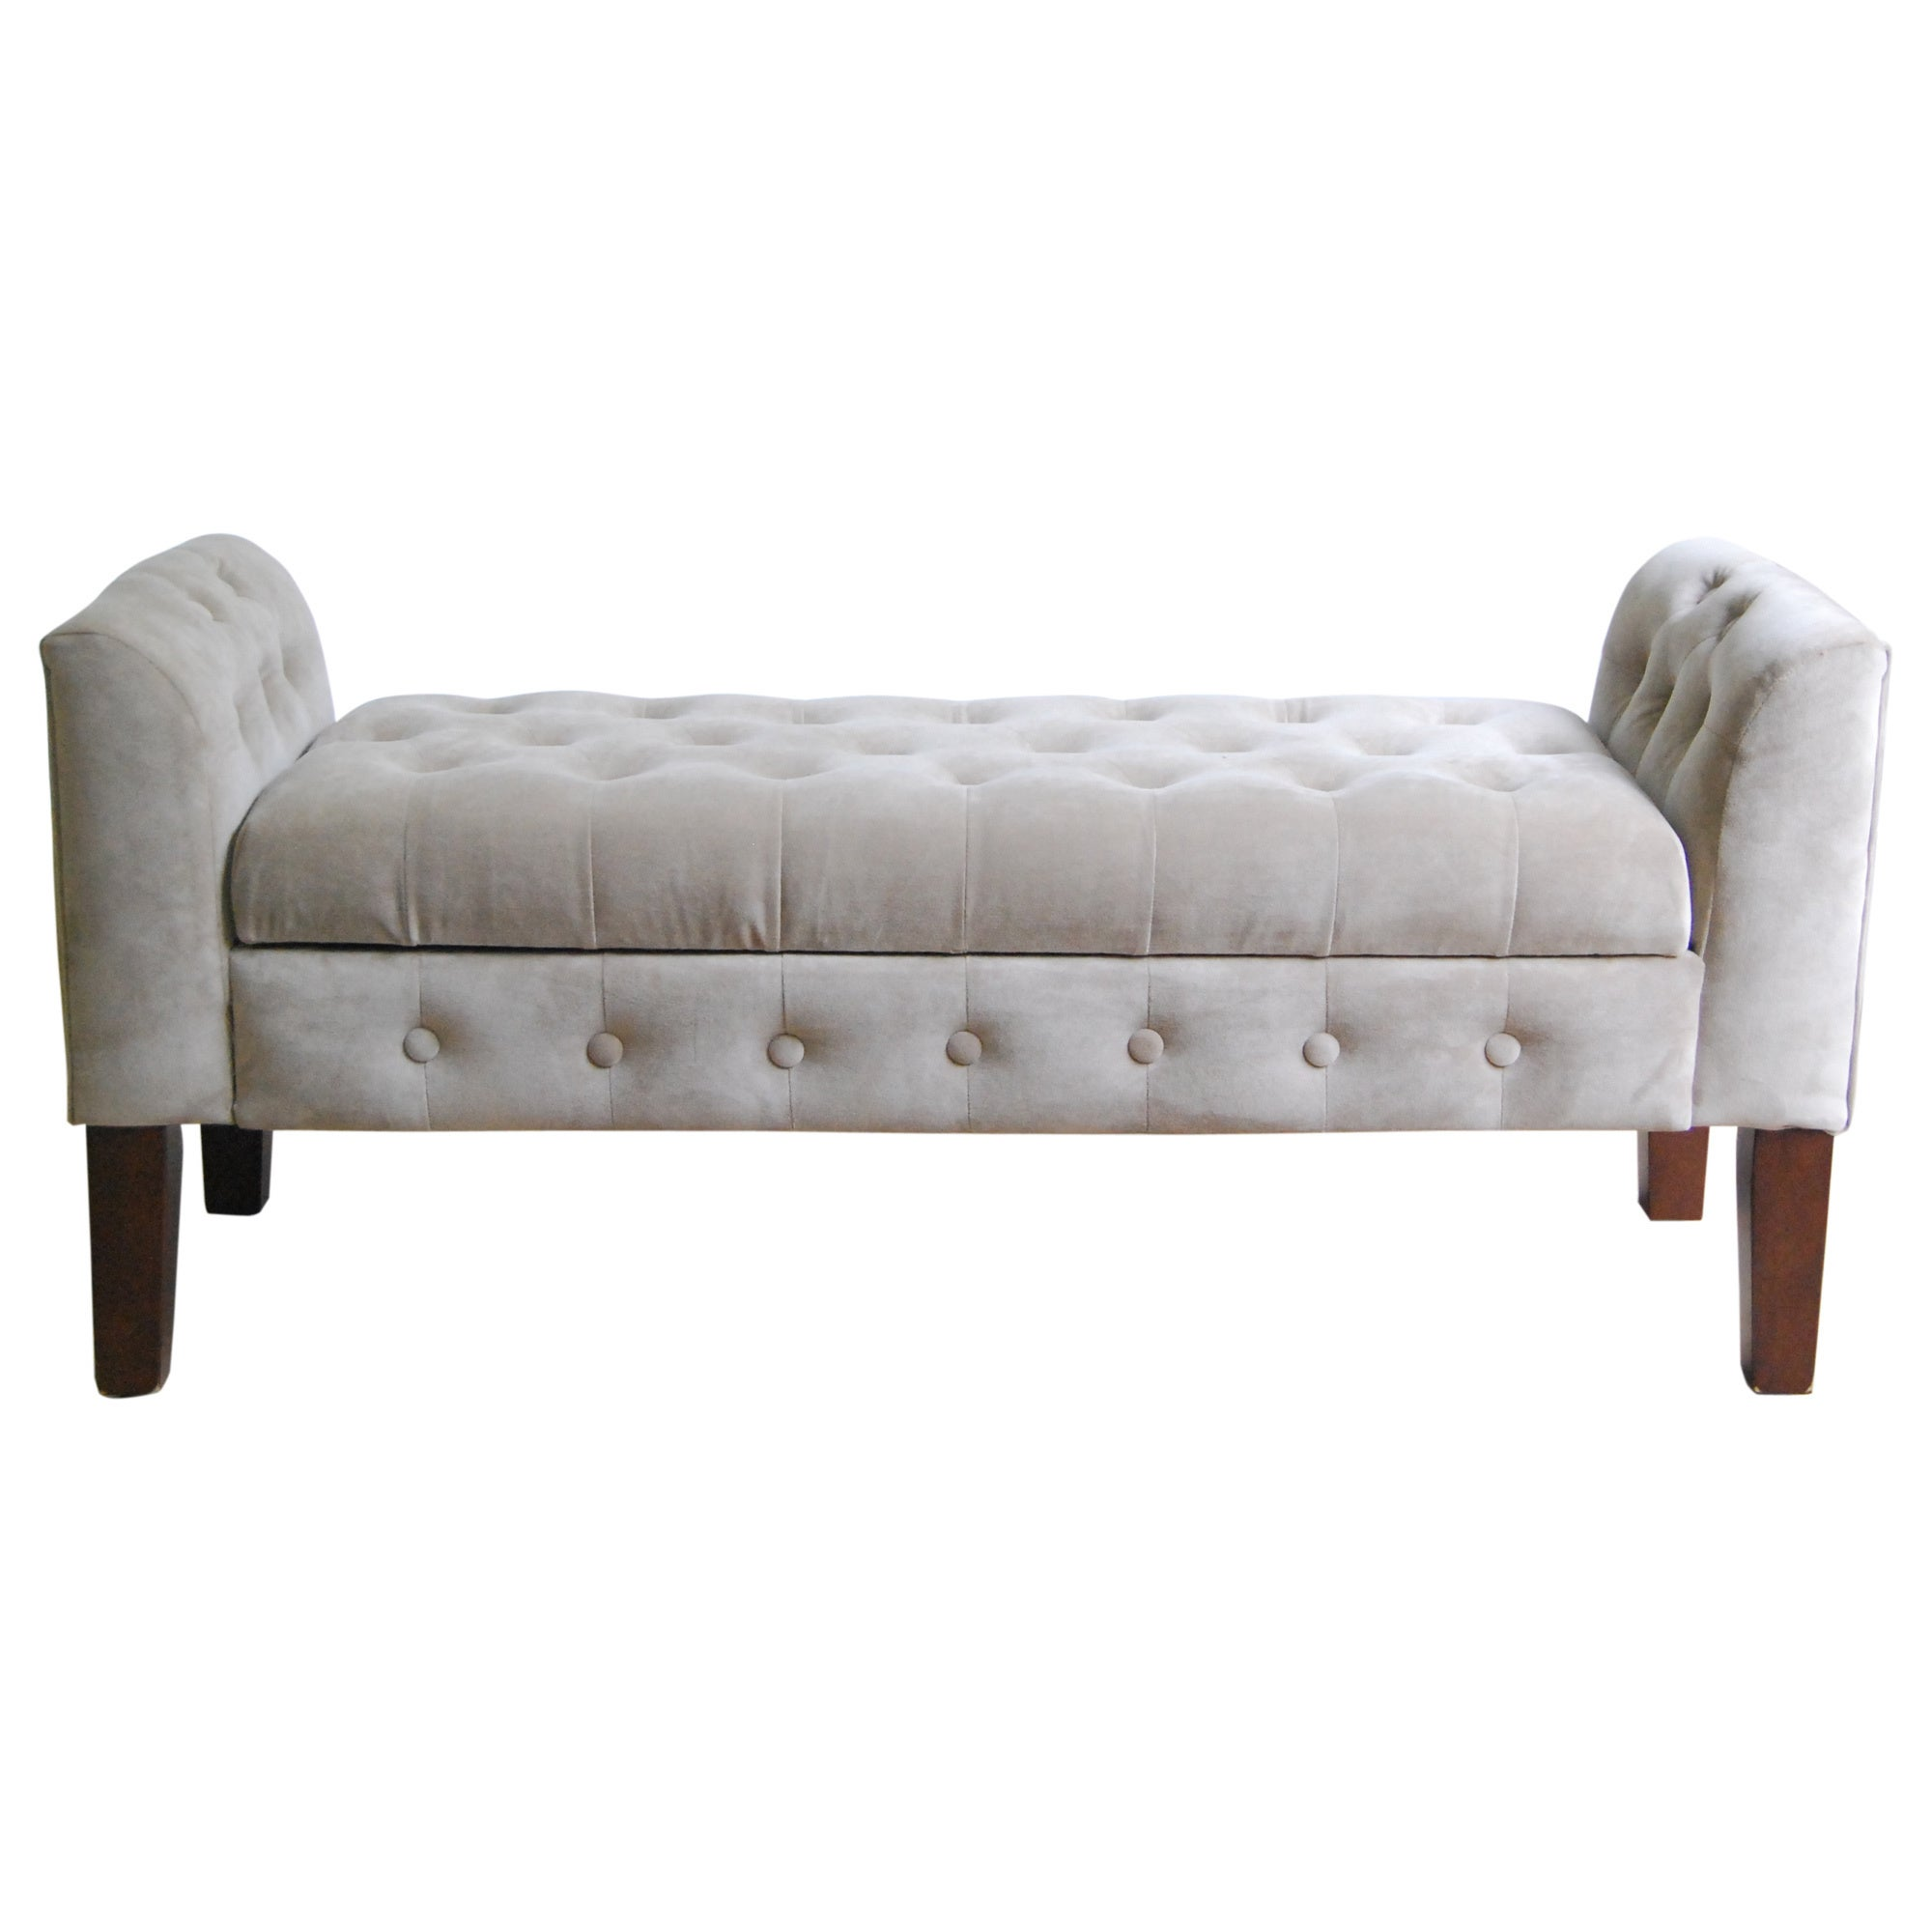 the gray grays velvet customize gold fabric modern frame bench medium style contemporary tufted bnch accent gdb luxury with inch metal ryan seat